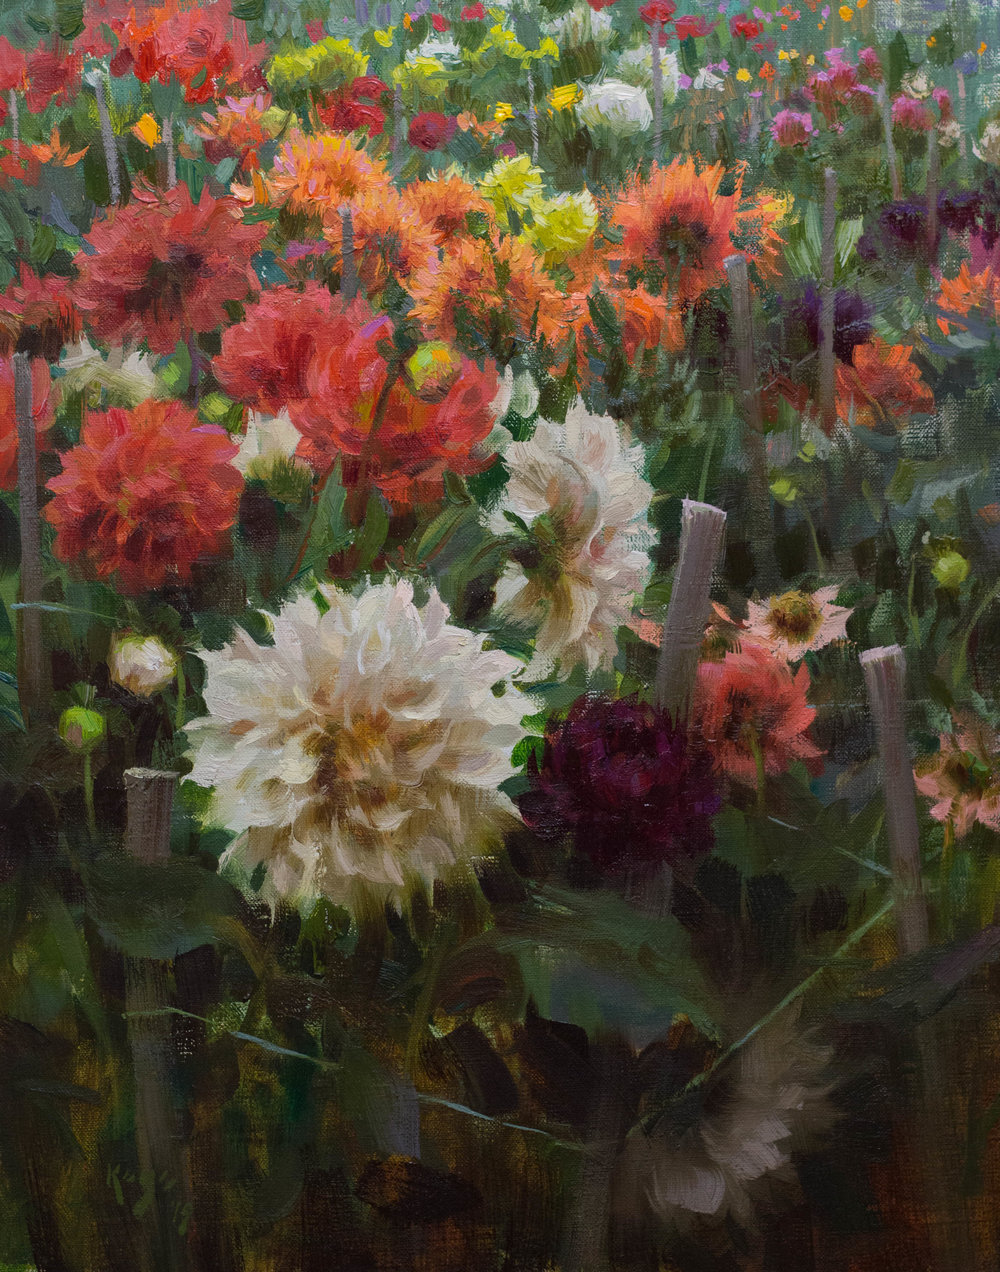 Jardin Dahlia, 20 x 16 inches 2019 (1 of 1).jpg